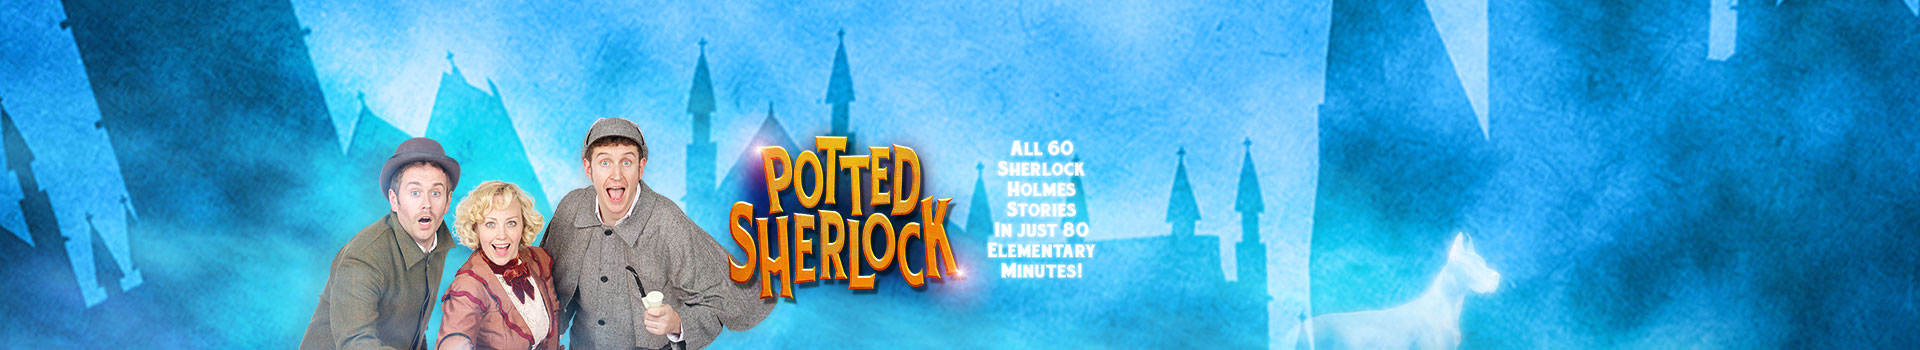 Potted Sherlock tickets